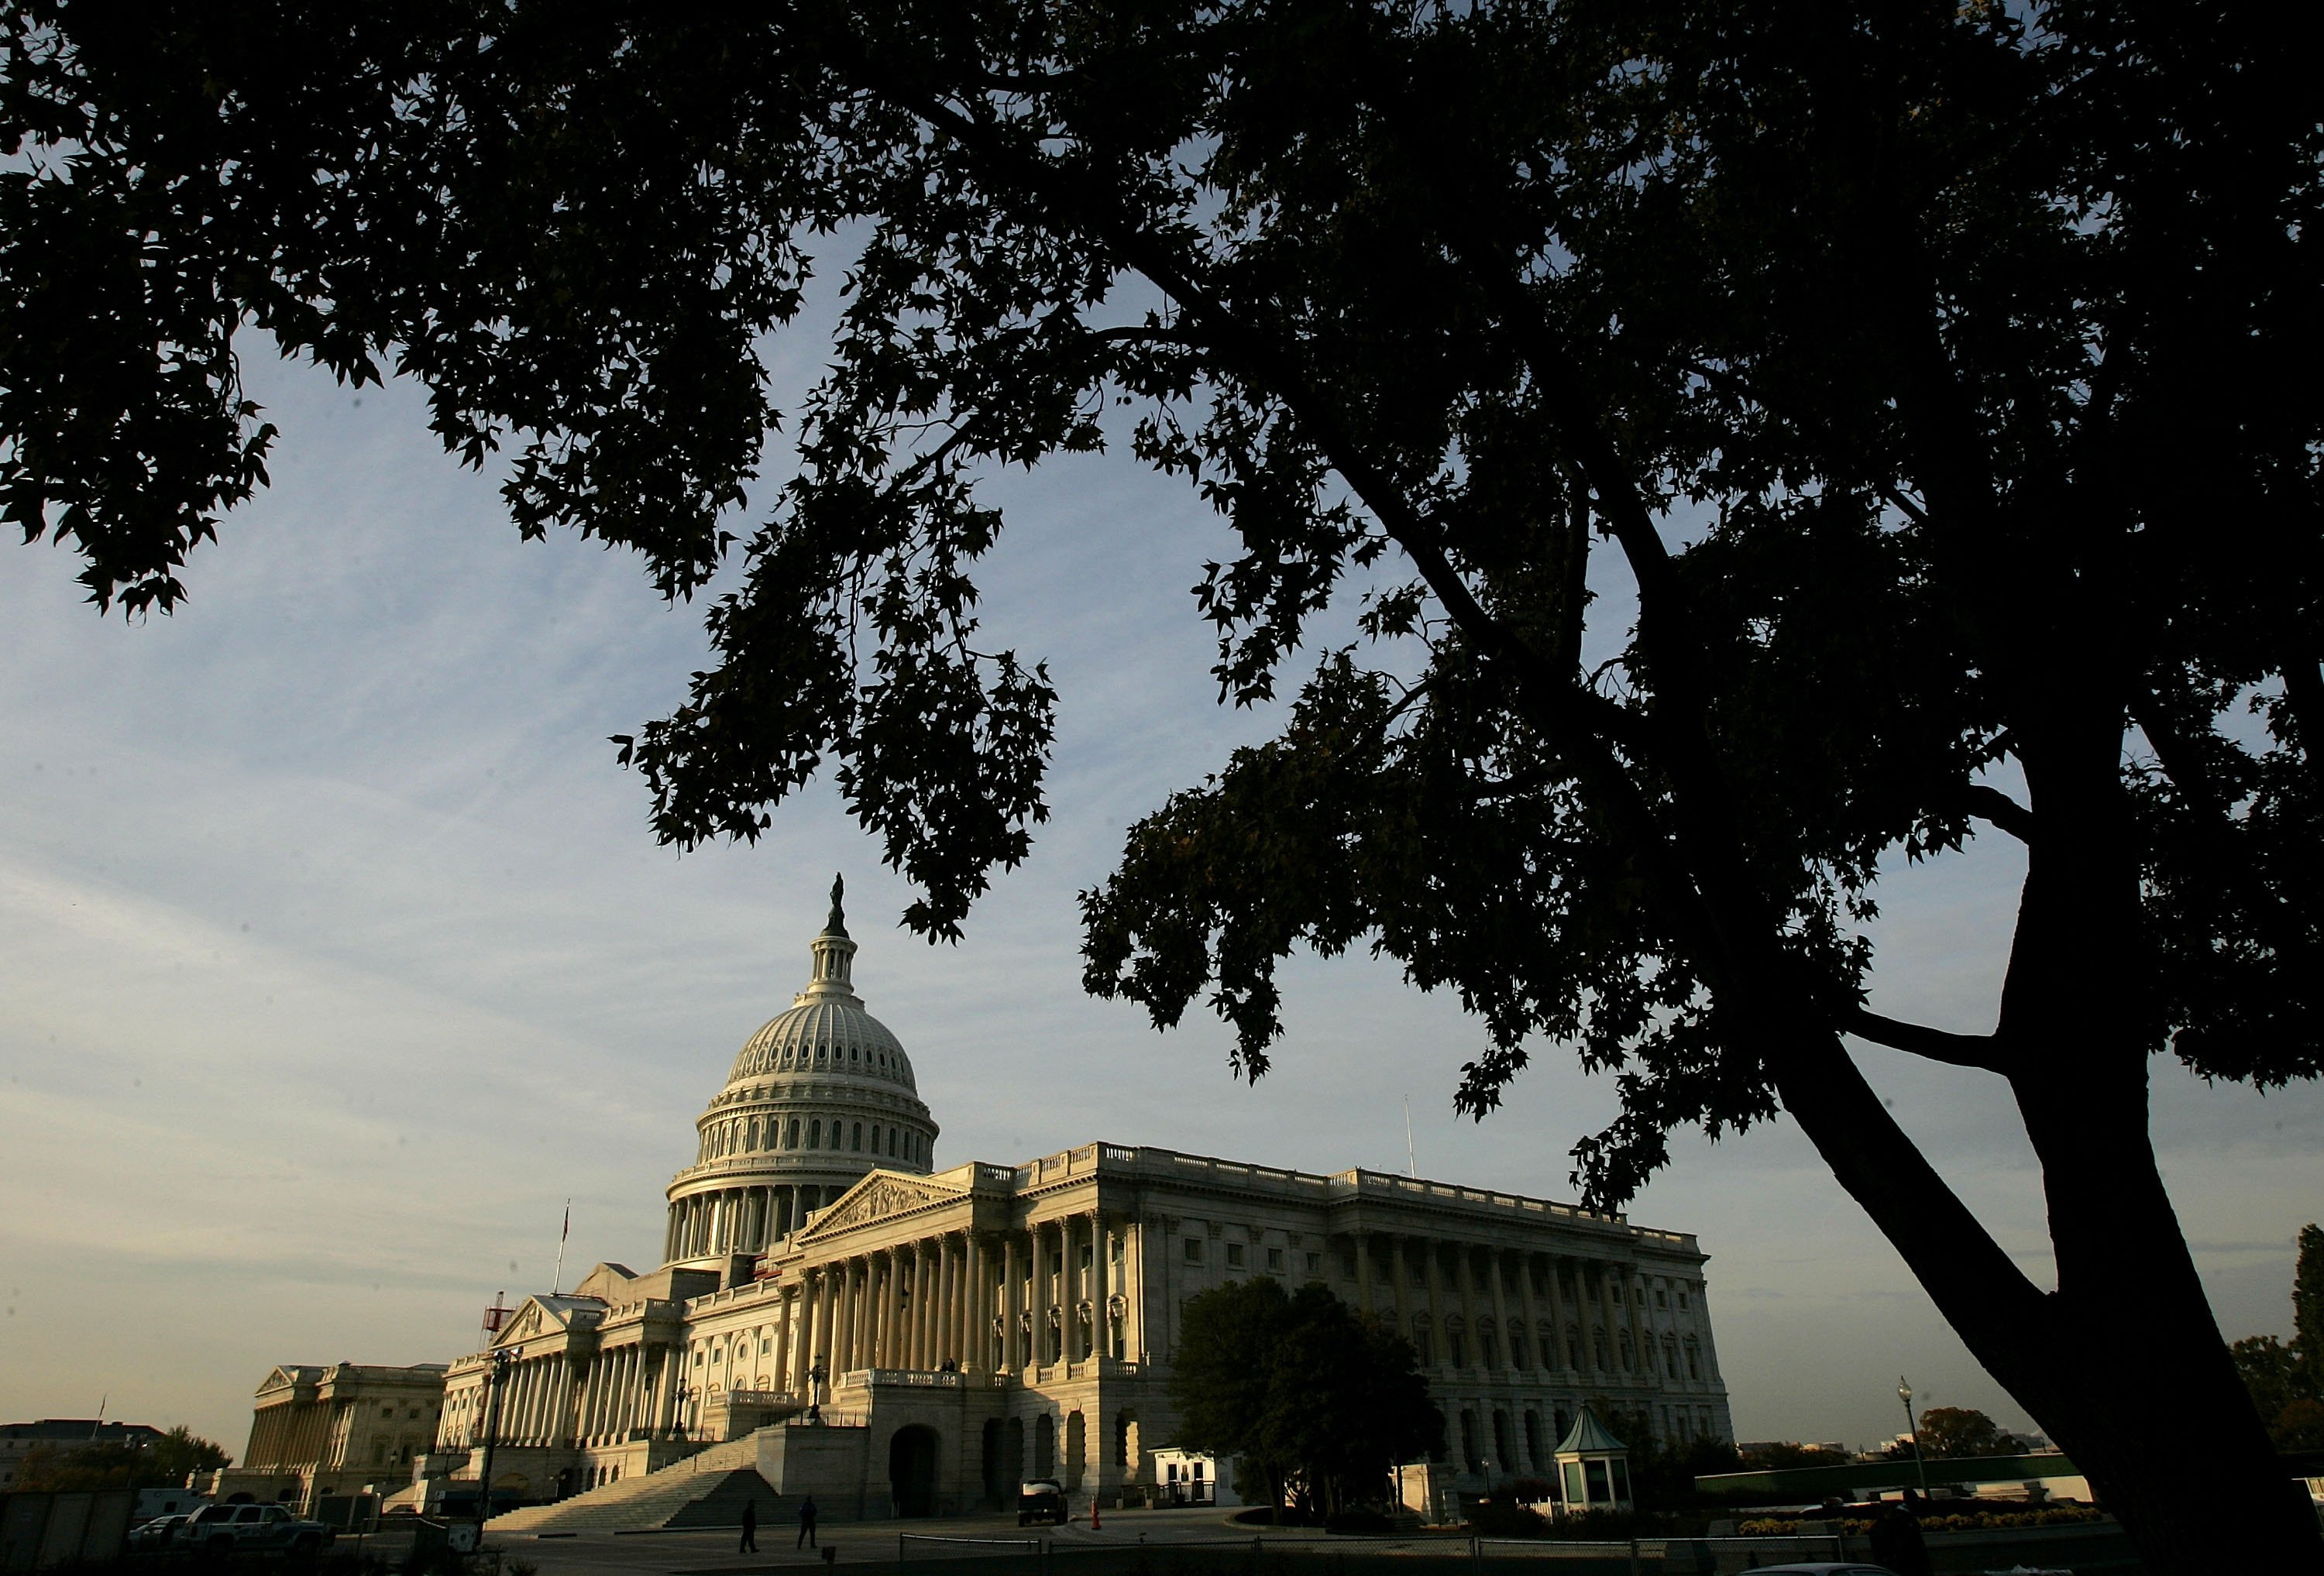 Congress cutting it close on spending deadline